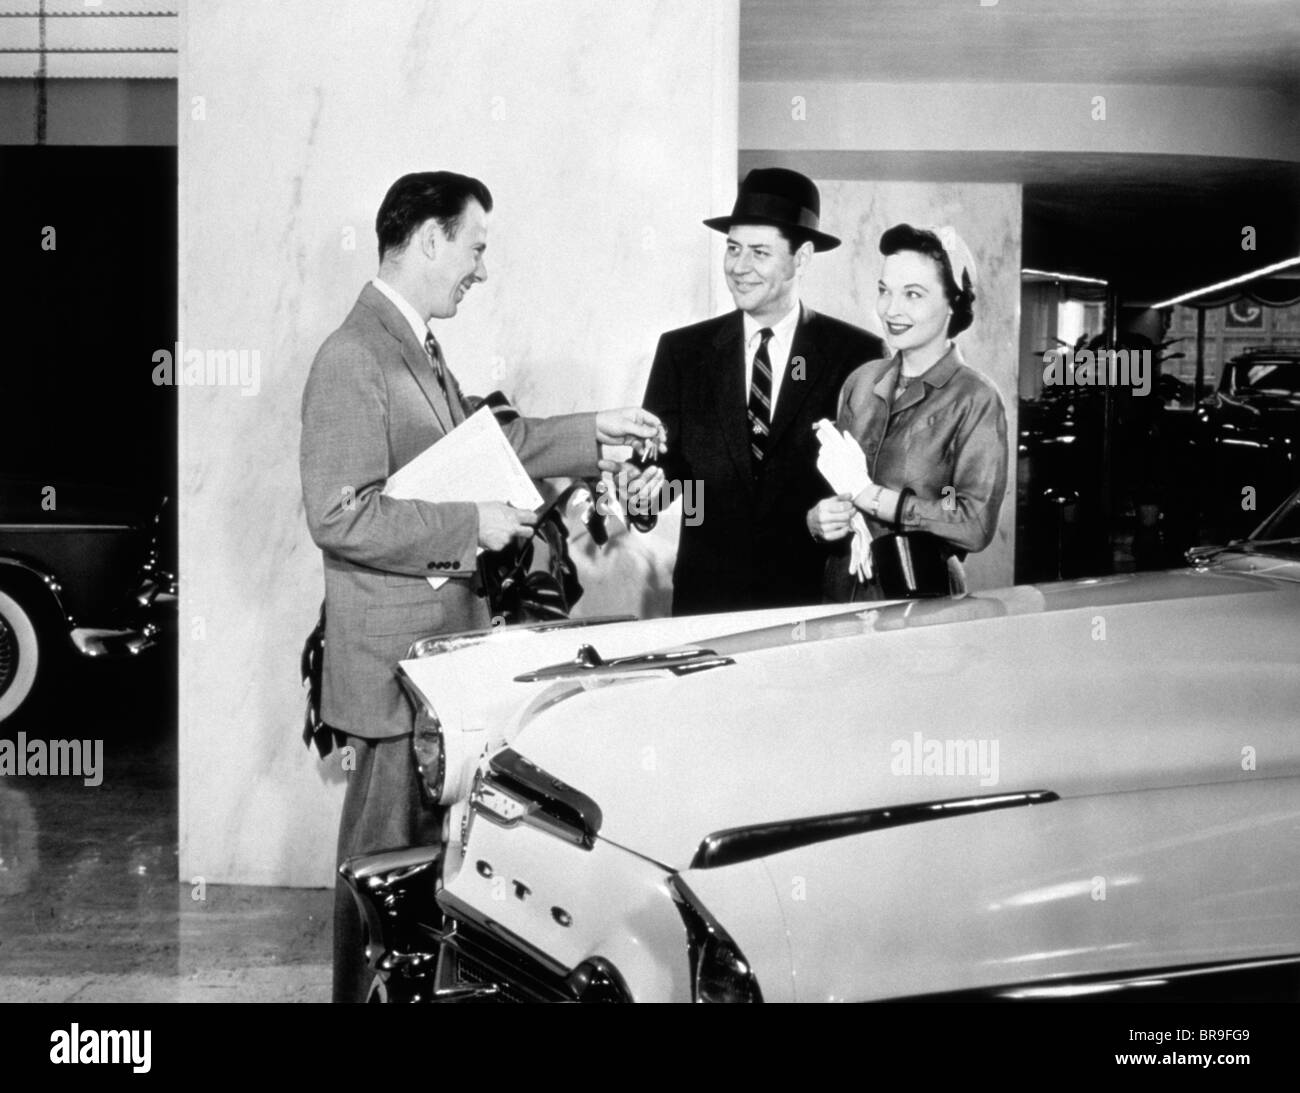 1950s COUPLE BUYING NEW CAR FROM AUTOMOBILE SALESMAN HANDING OVER THE KEYS